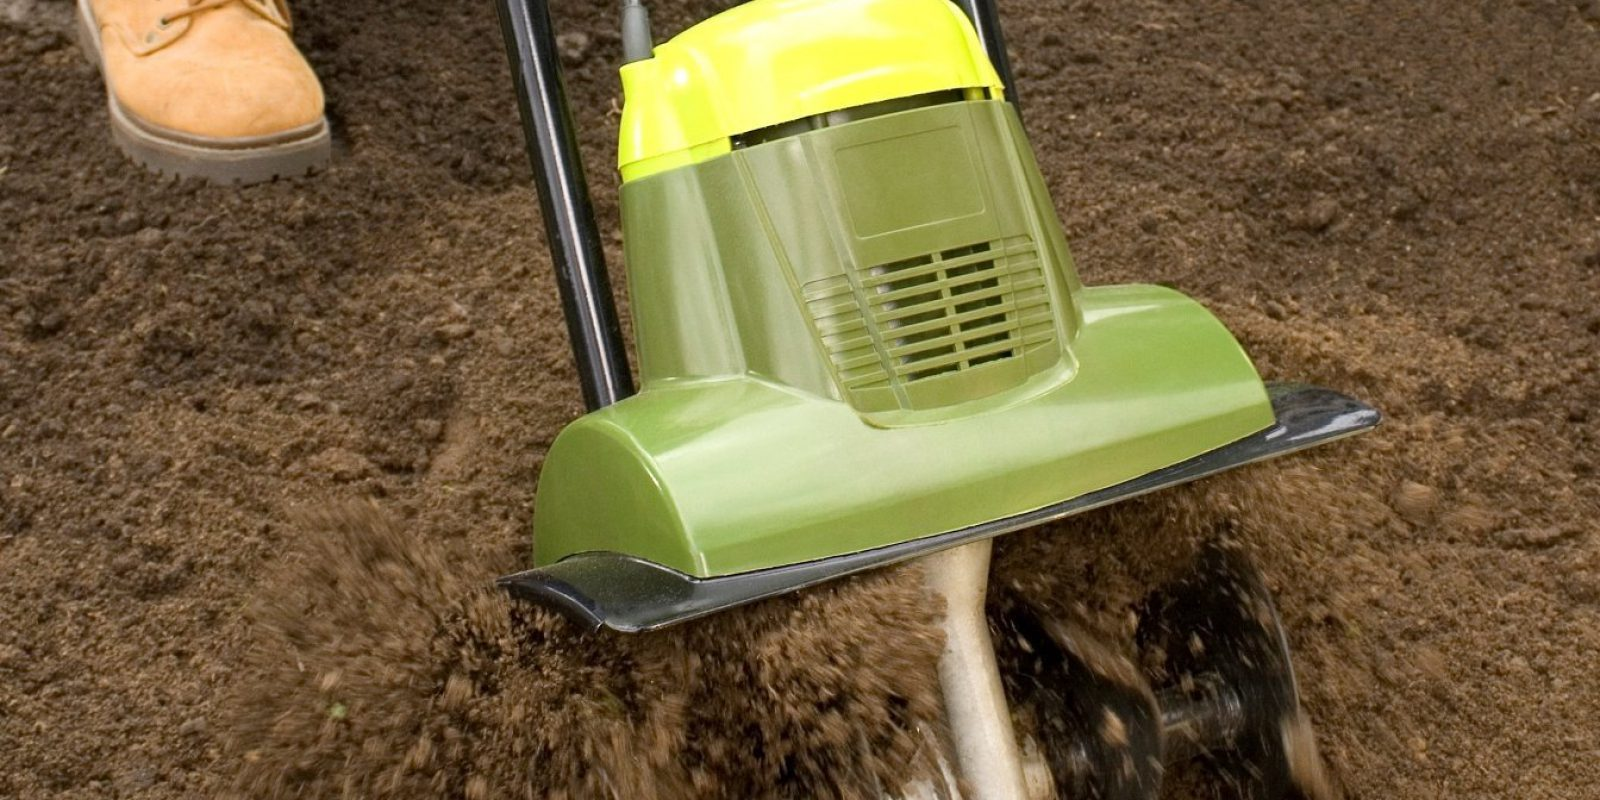 Sun Joe TJ600E Electric Tiller Review | Well balanced and lightweight!